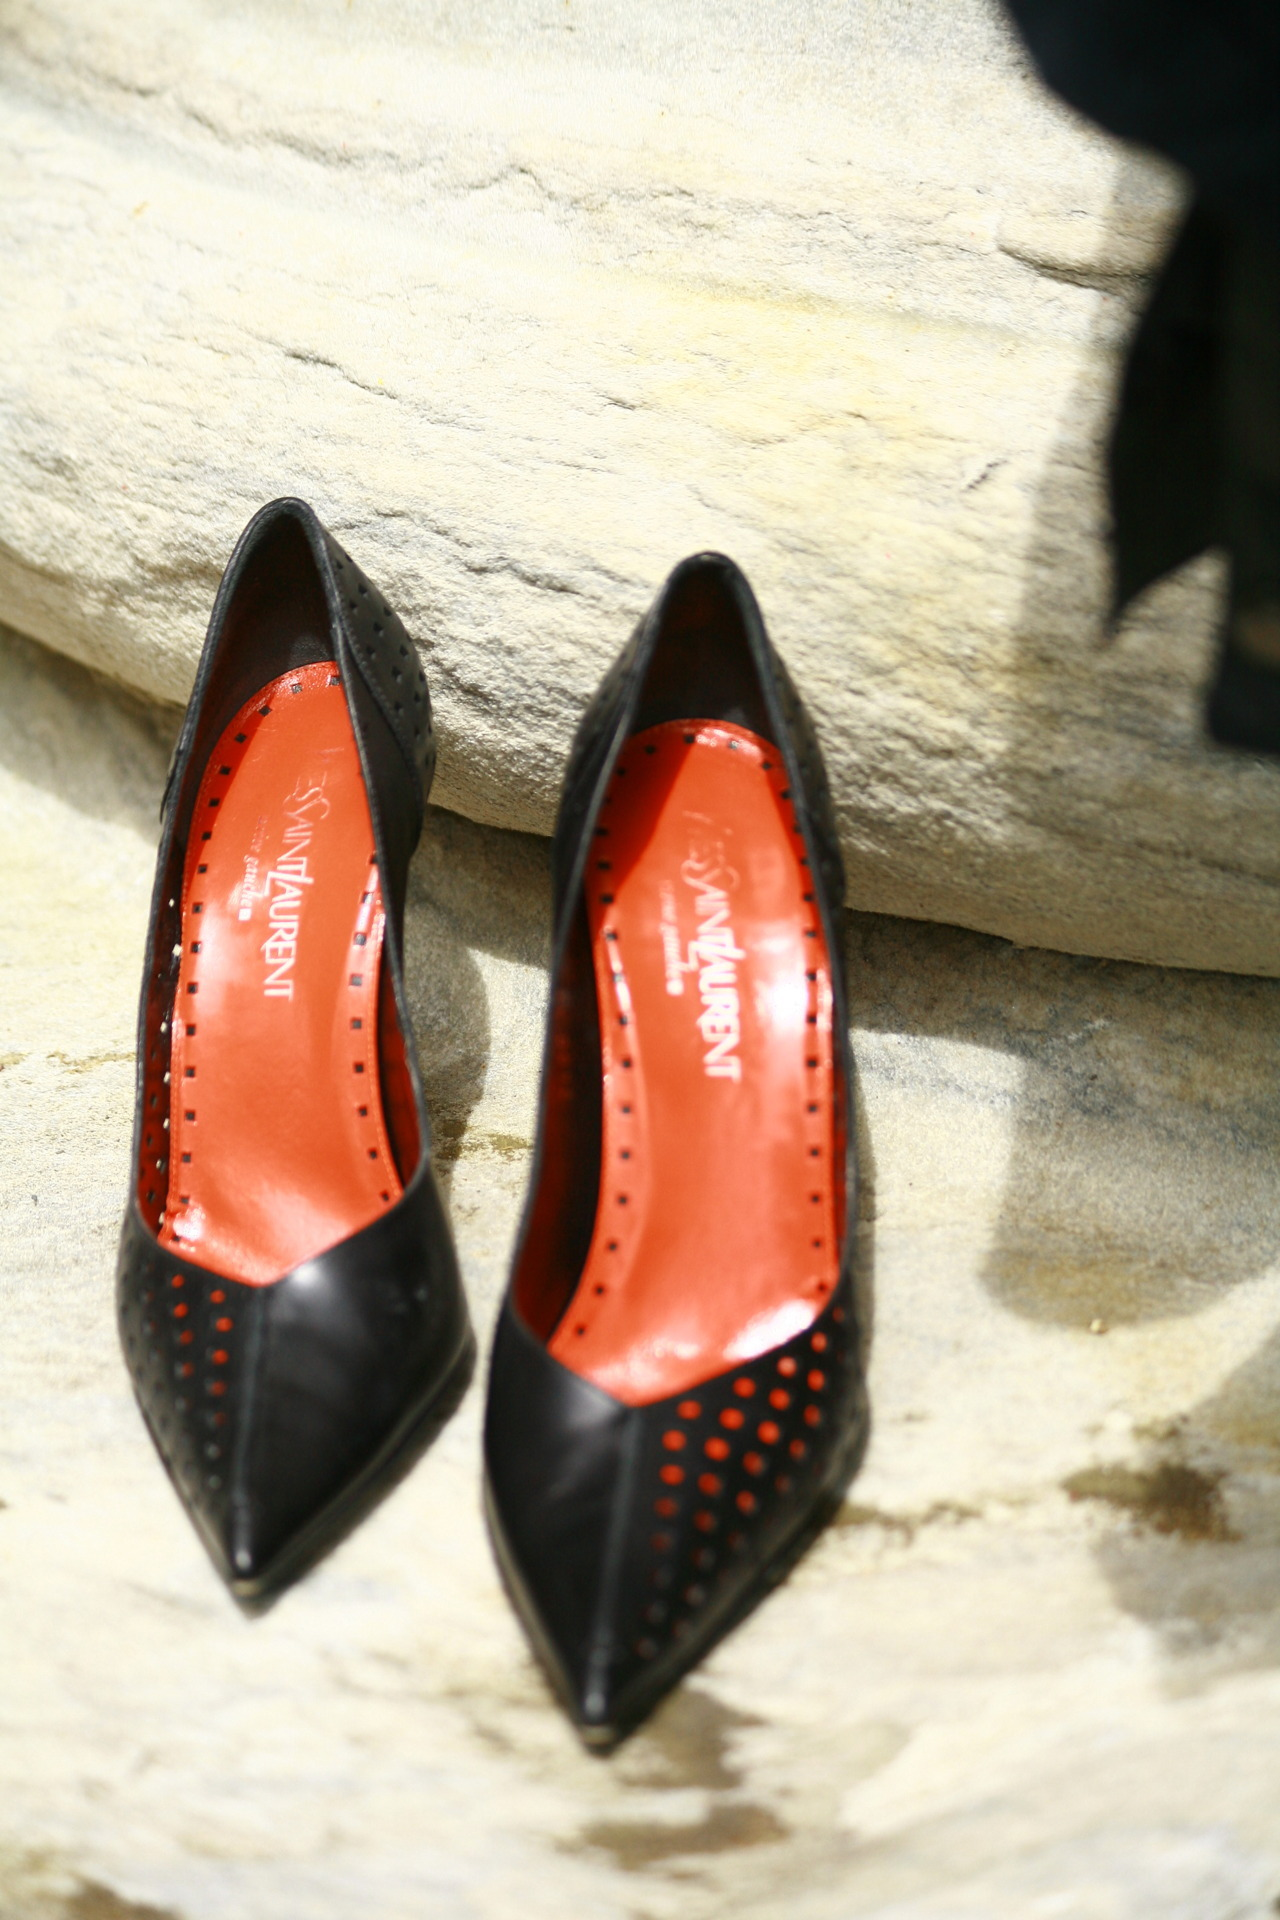 Vintage Yves Saint Laurent, perforated high heel pumps.